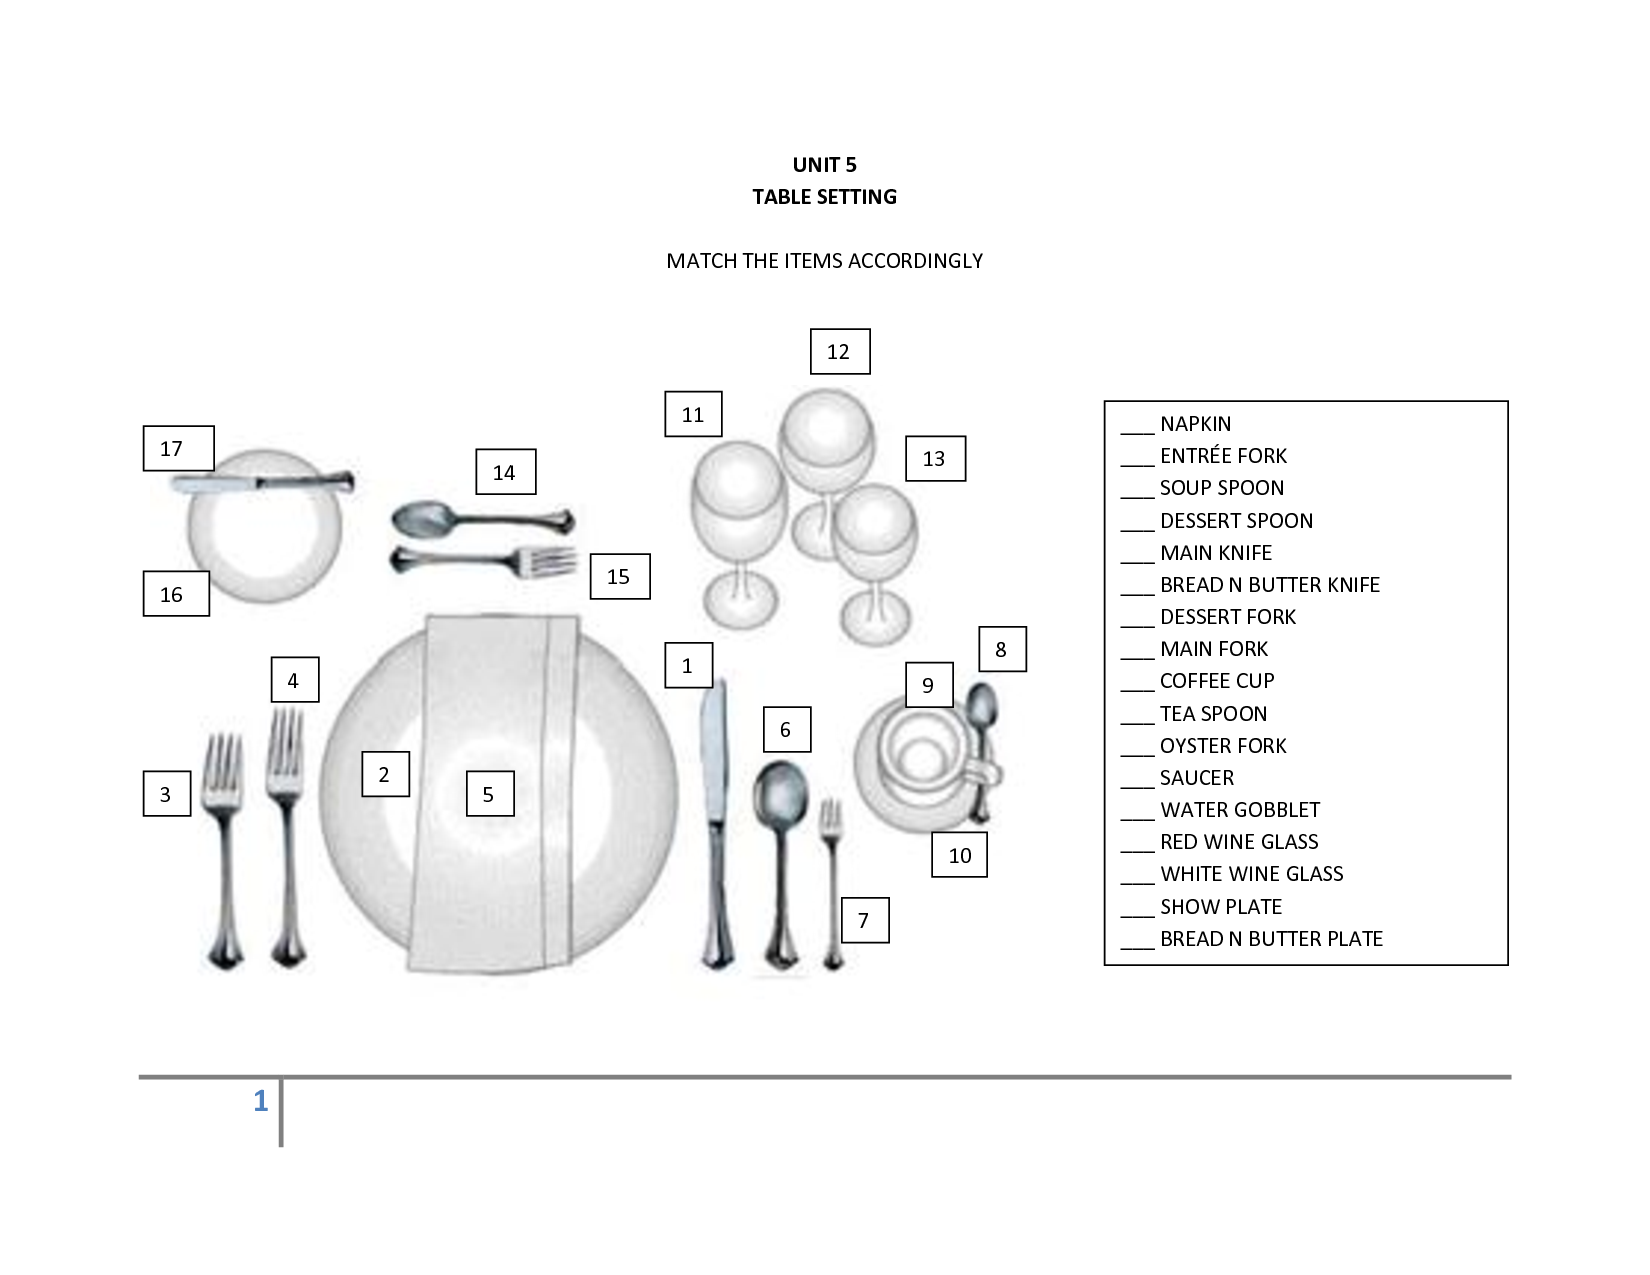 Formal Place Setting Template  sc 1 st  Pinterest & Formal Place Setting Template | ADF Gala | Pinterest | Place setting ...